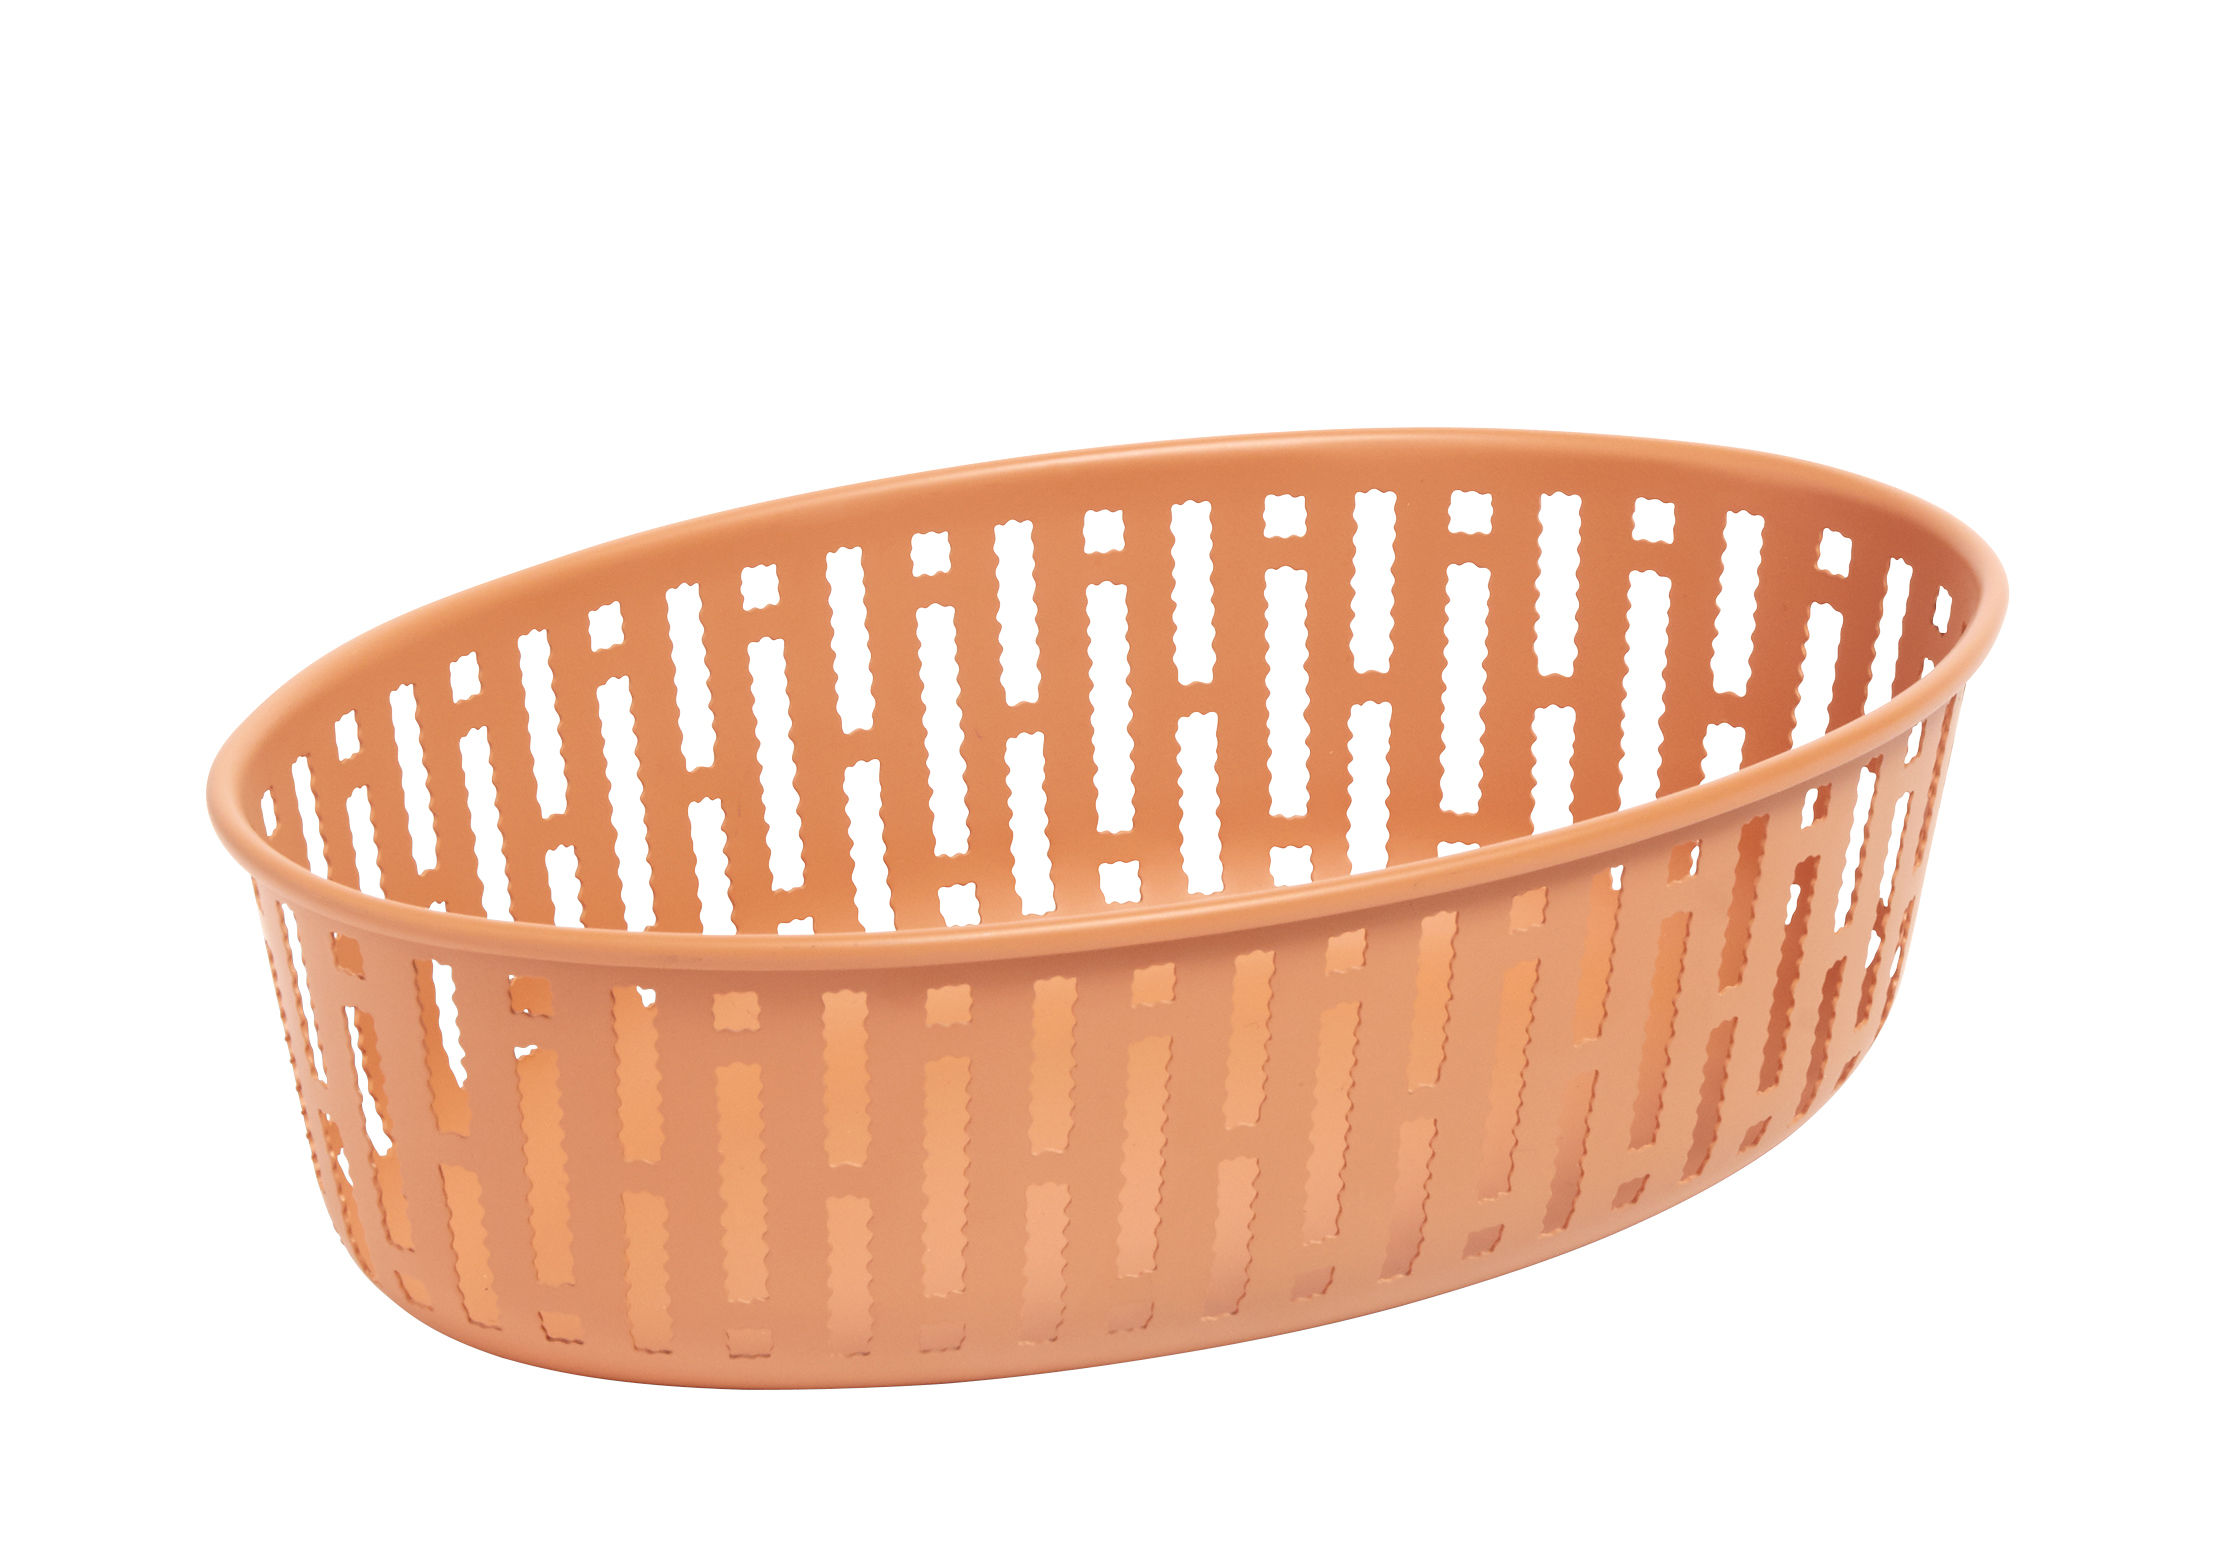 Decoration - Centrepieces & Centrepiece Bowls - Panier Basket - / 25 x 16 cm - Steel by Hay - Rust - Steel